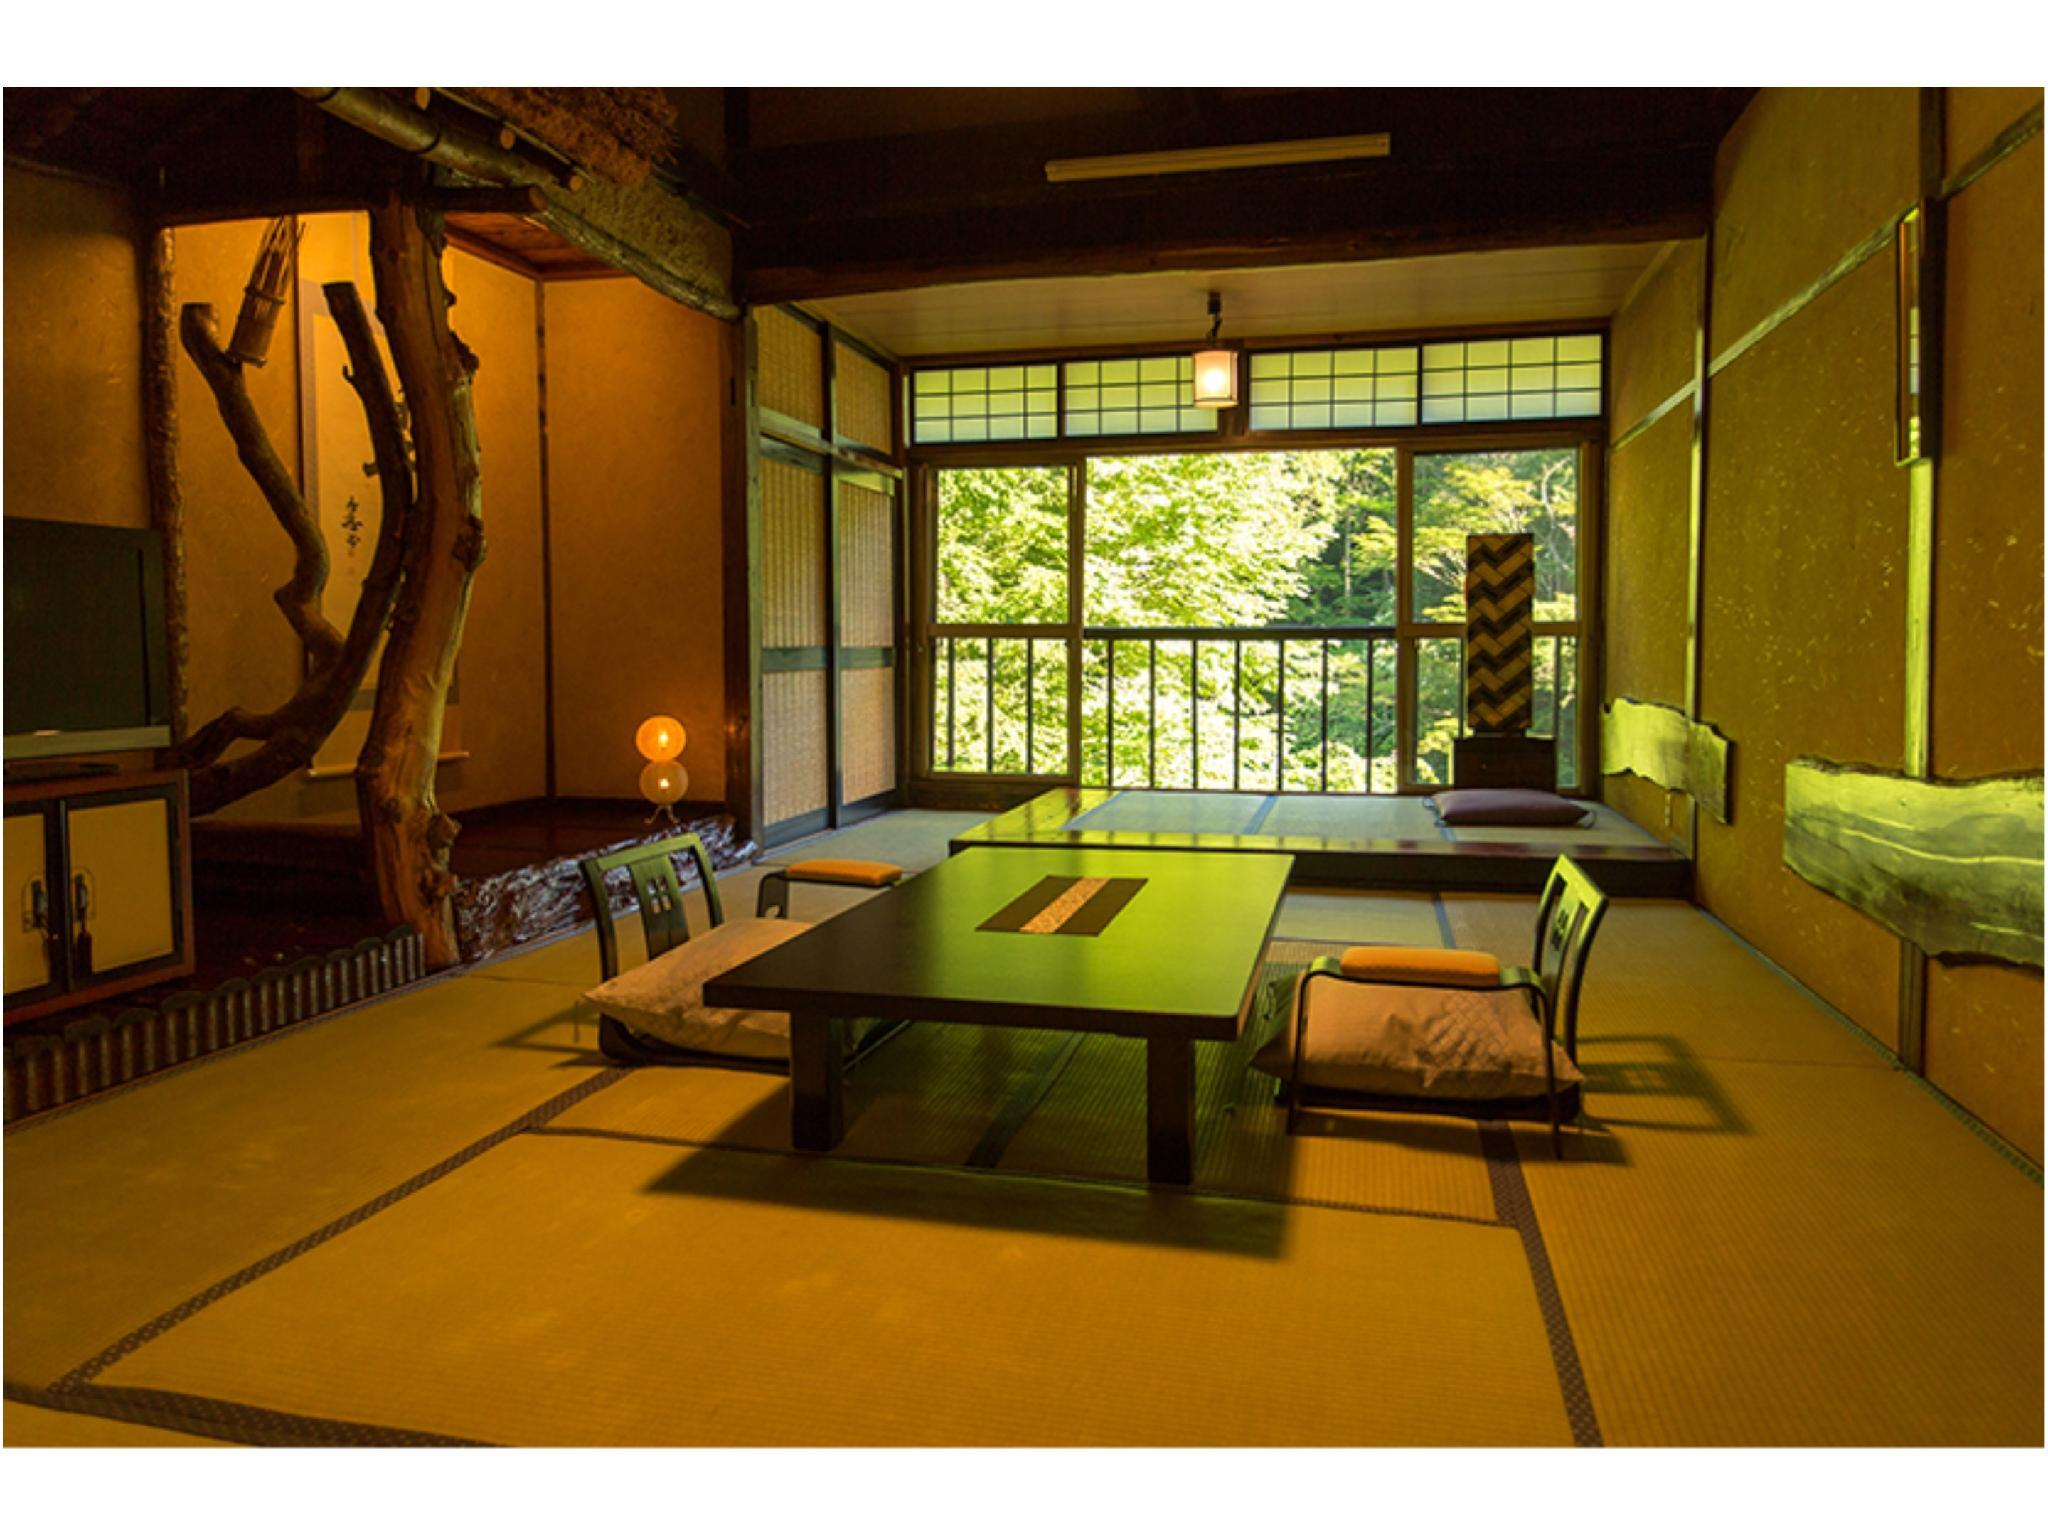 和式房 (2020年4月1日起禁烟) (Japanese-style Room (Main Building) *No indoor bath)